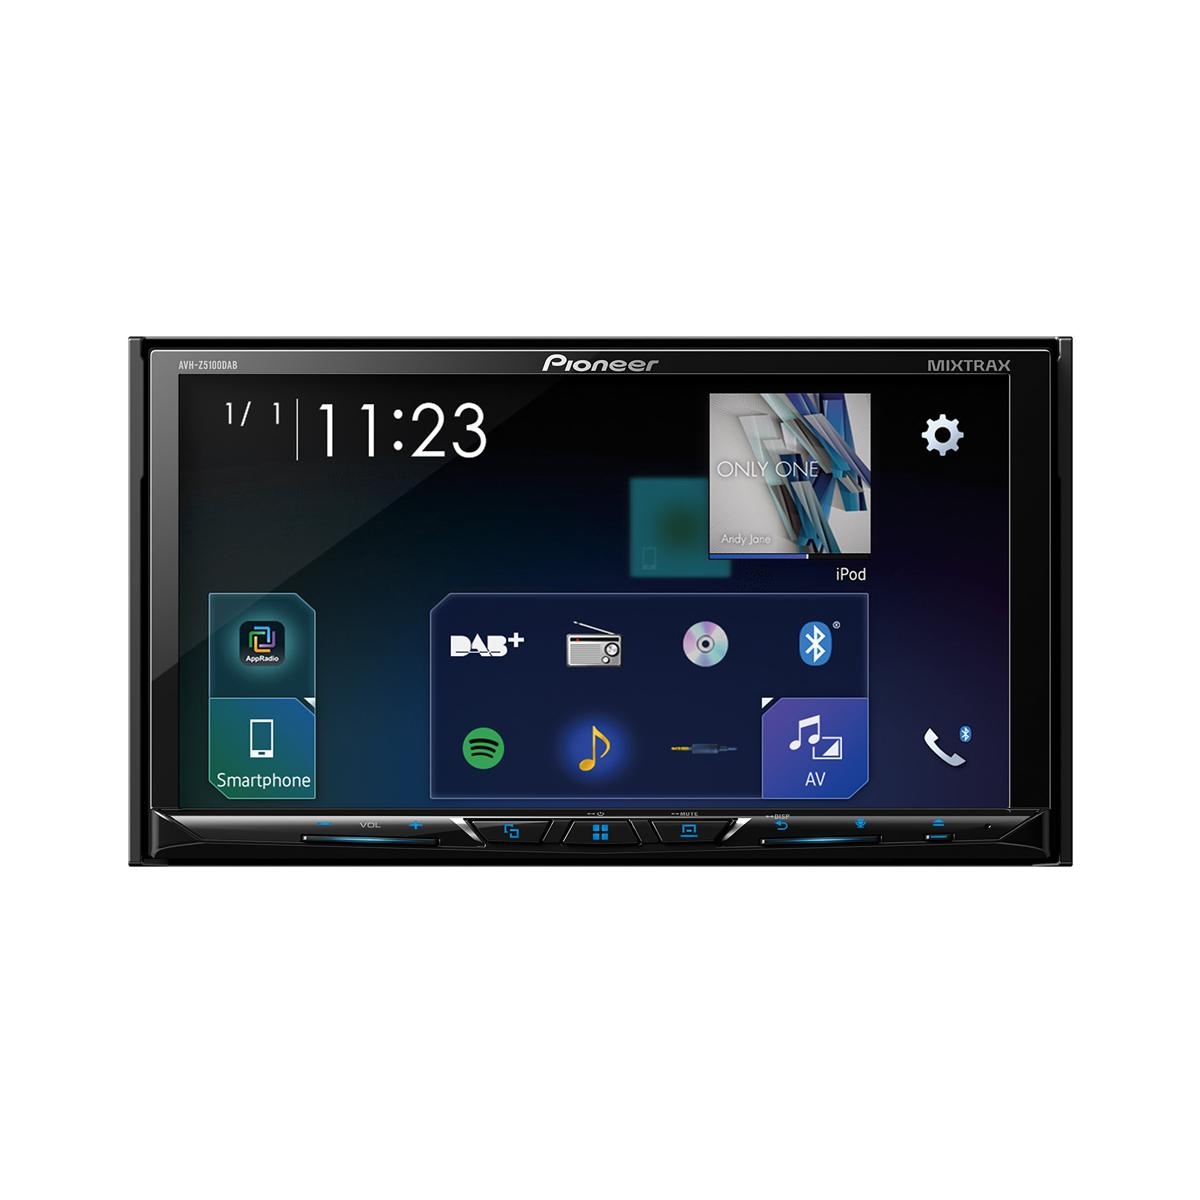 Double Din Screen Pioneer AVH-Z5100DAB